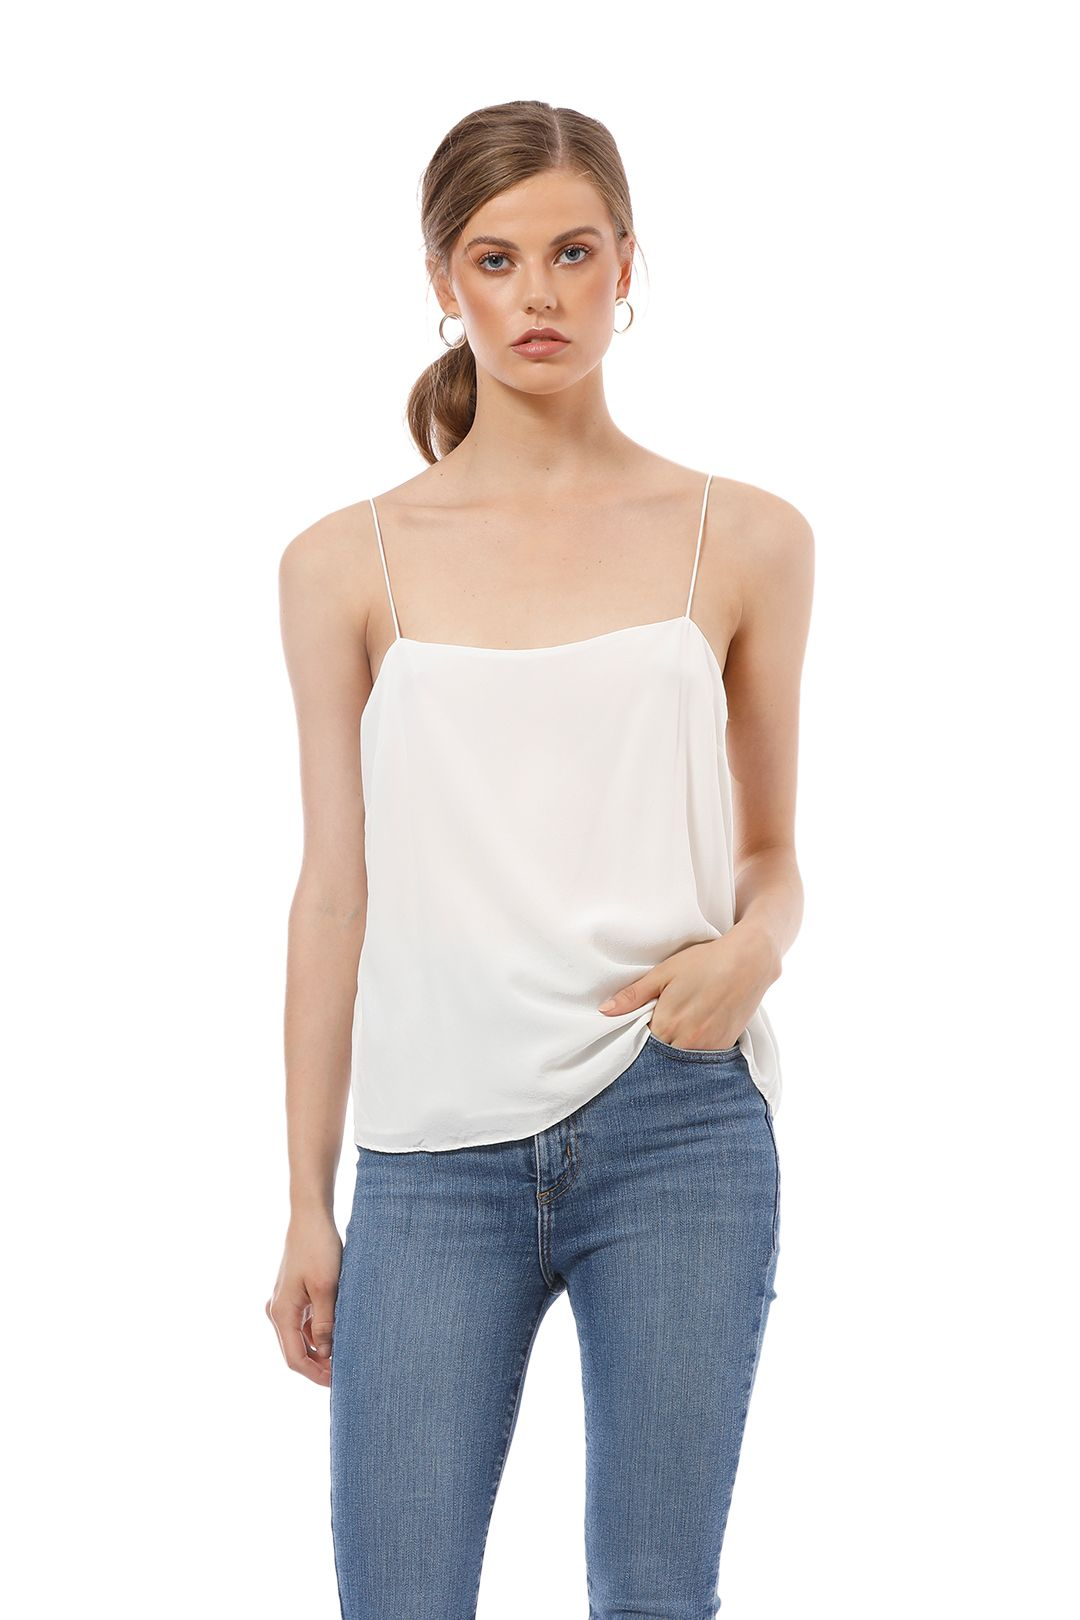 Elka Collective - Lucca Cami - White - Front Close